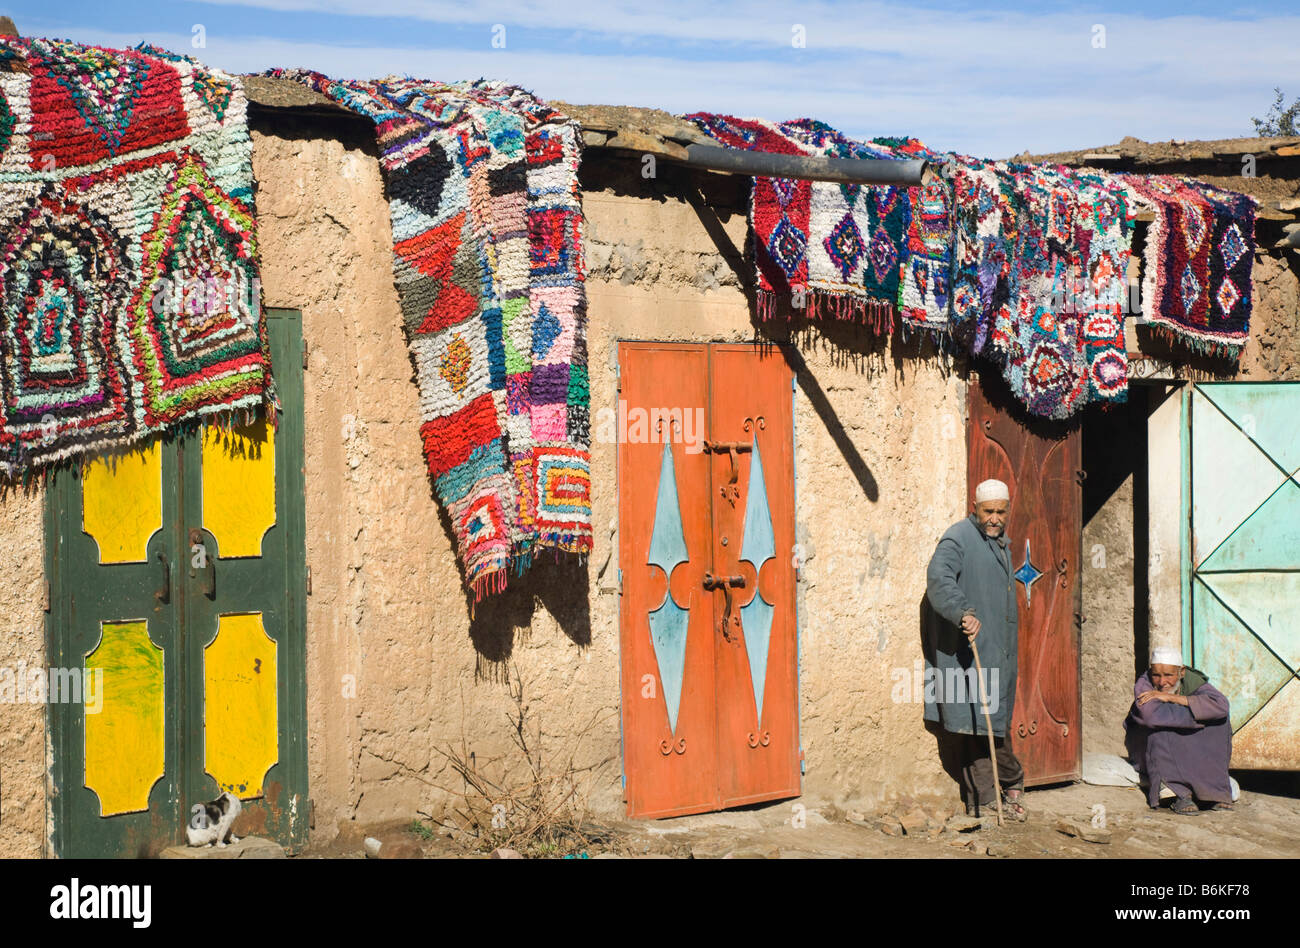 Traditional Moroccan Berber house with carpets hanging outside. Morrocco - Stock Image